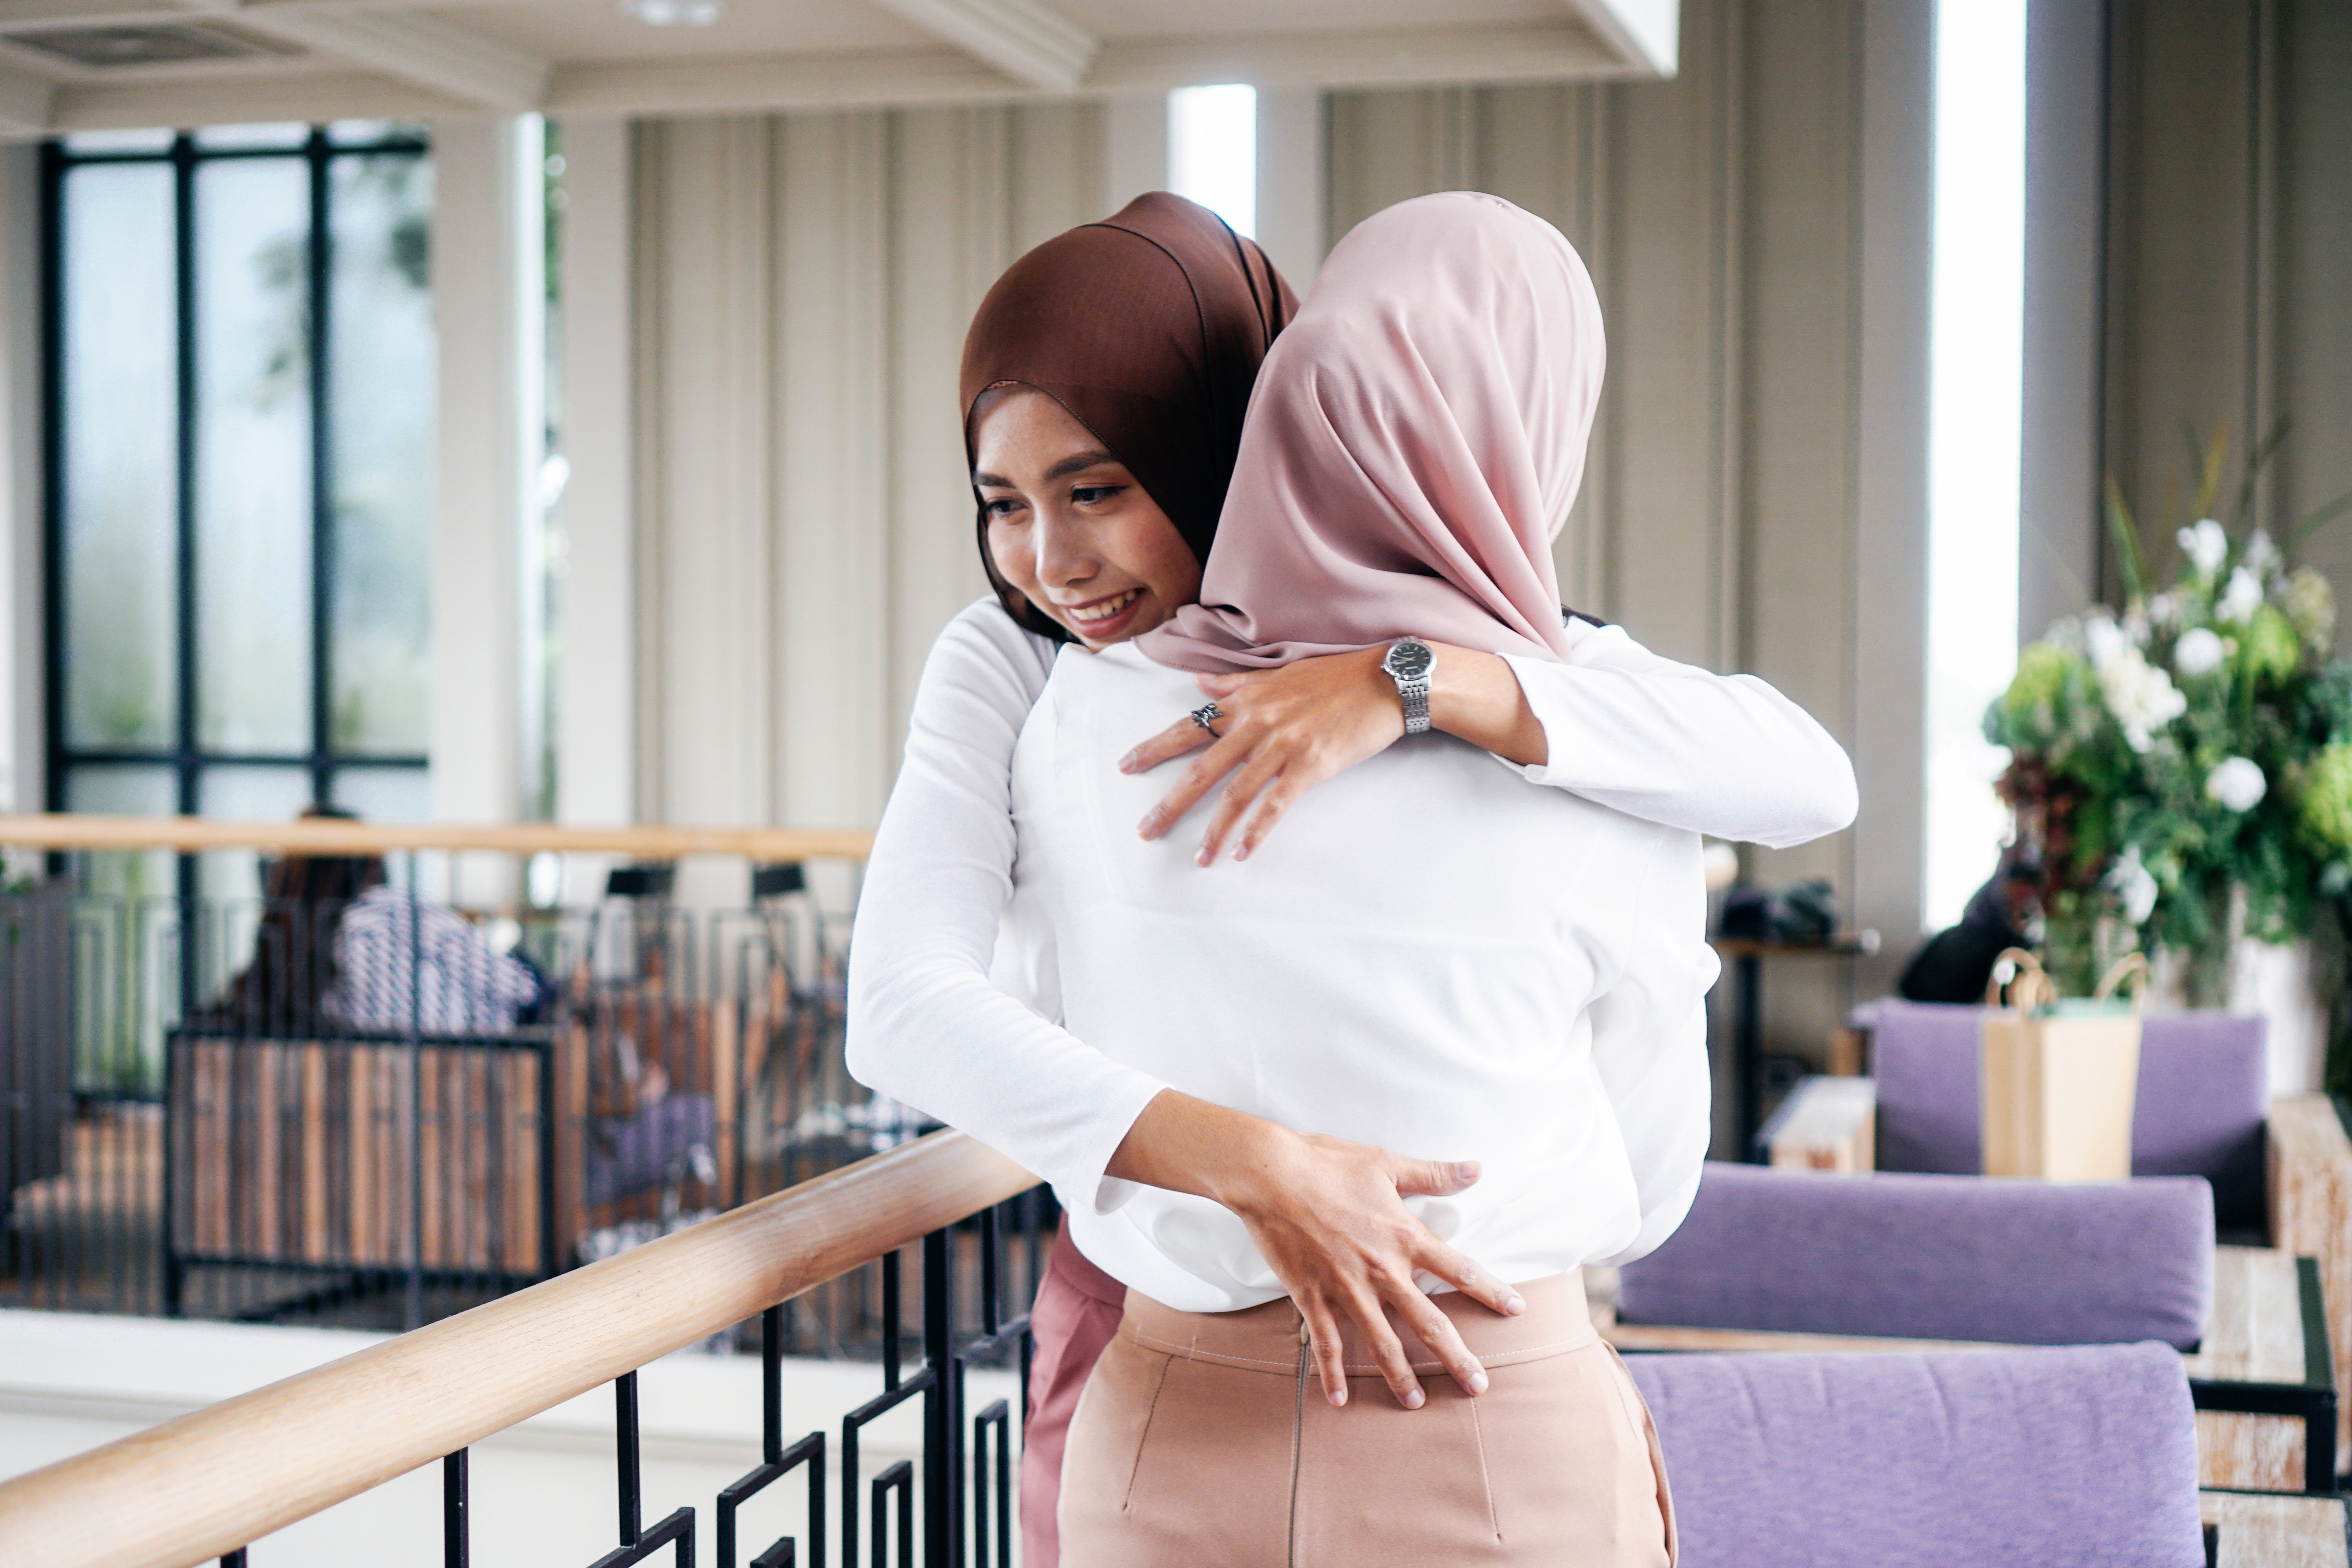 Portrait of young Asian muslim women in happy smile with hijab or head scarf hugging each other indoors|Photo: Getty Images